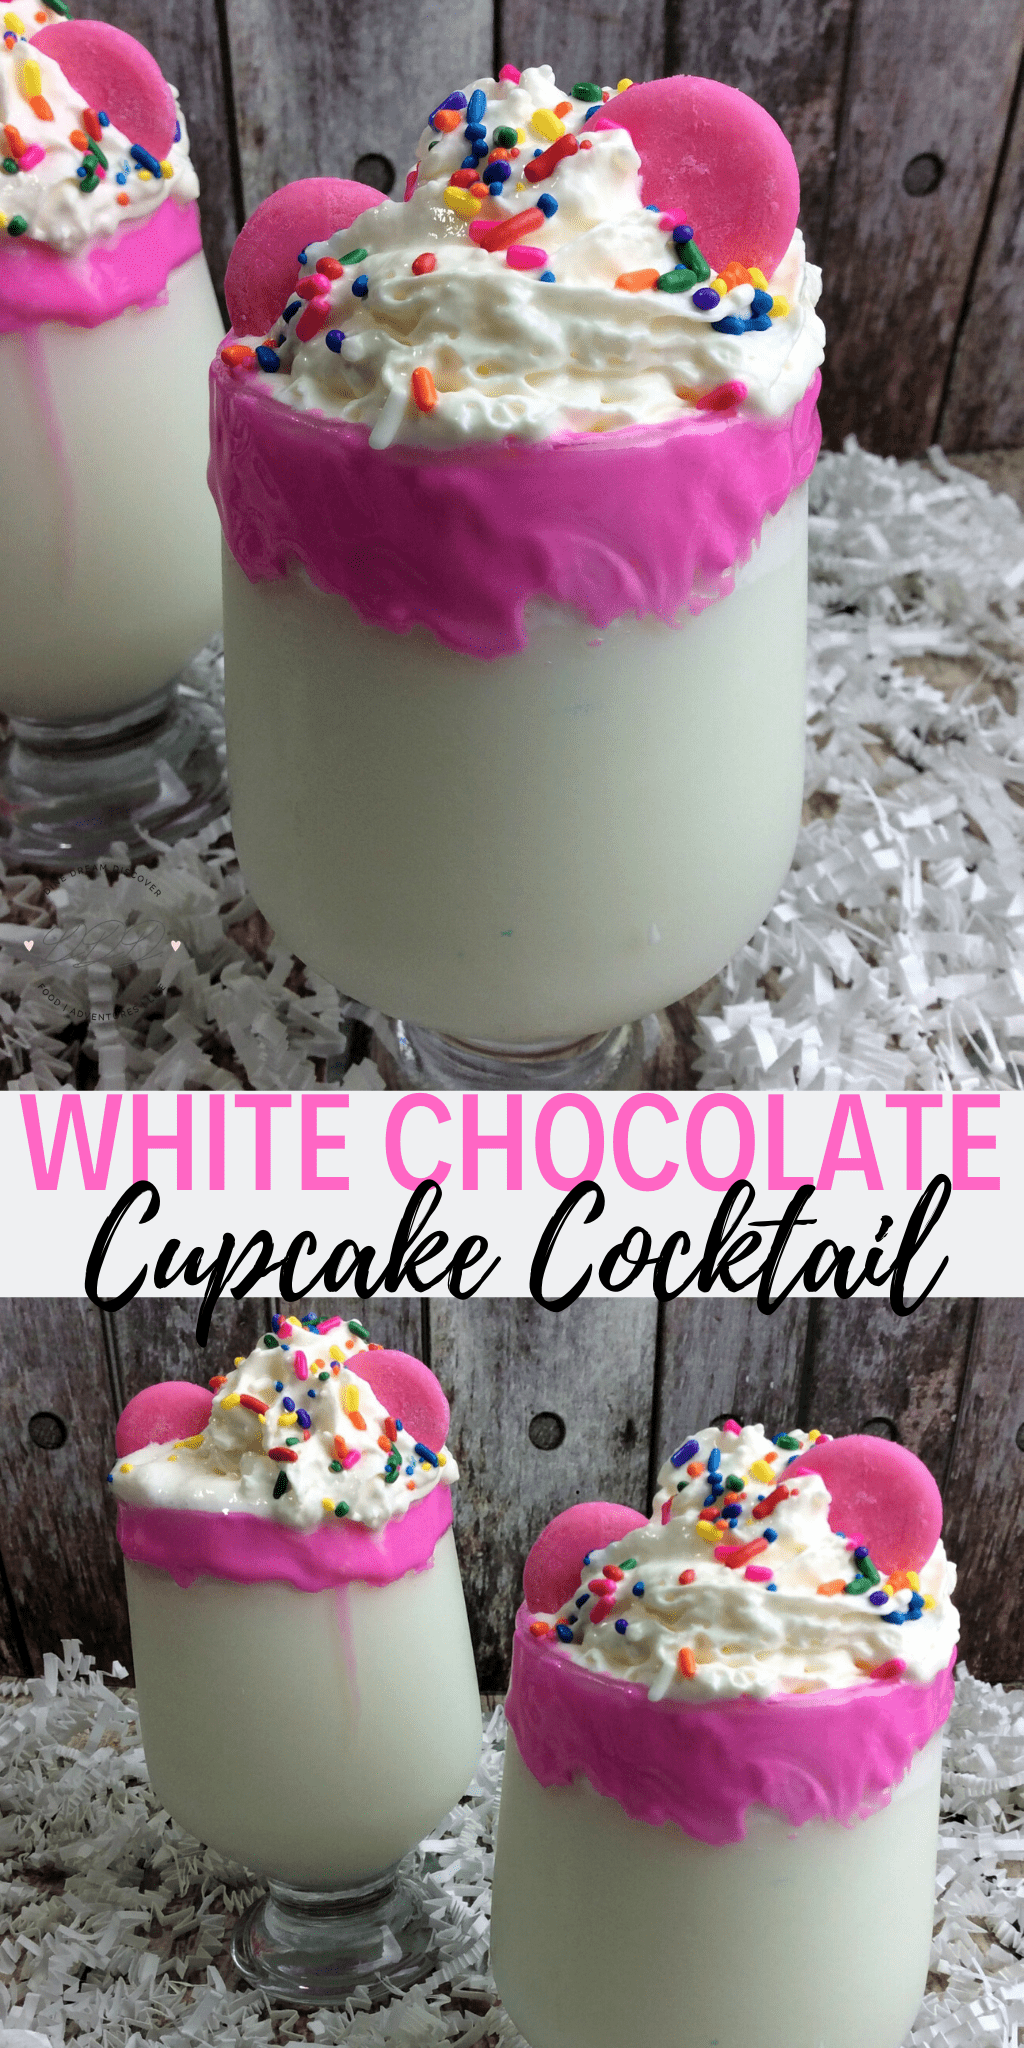 White Chocolate Cupcake Cocktail